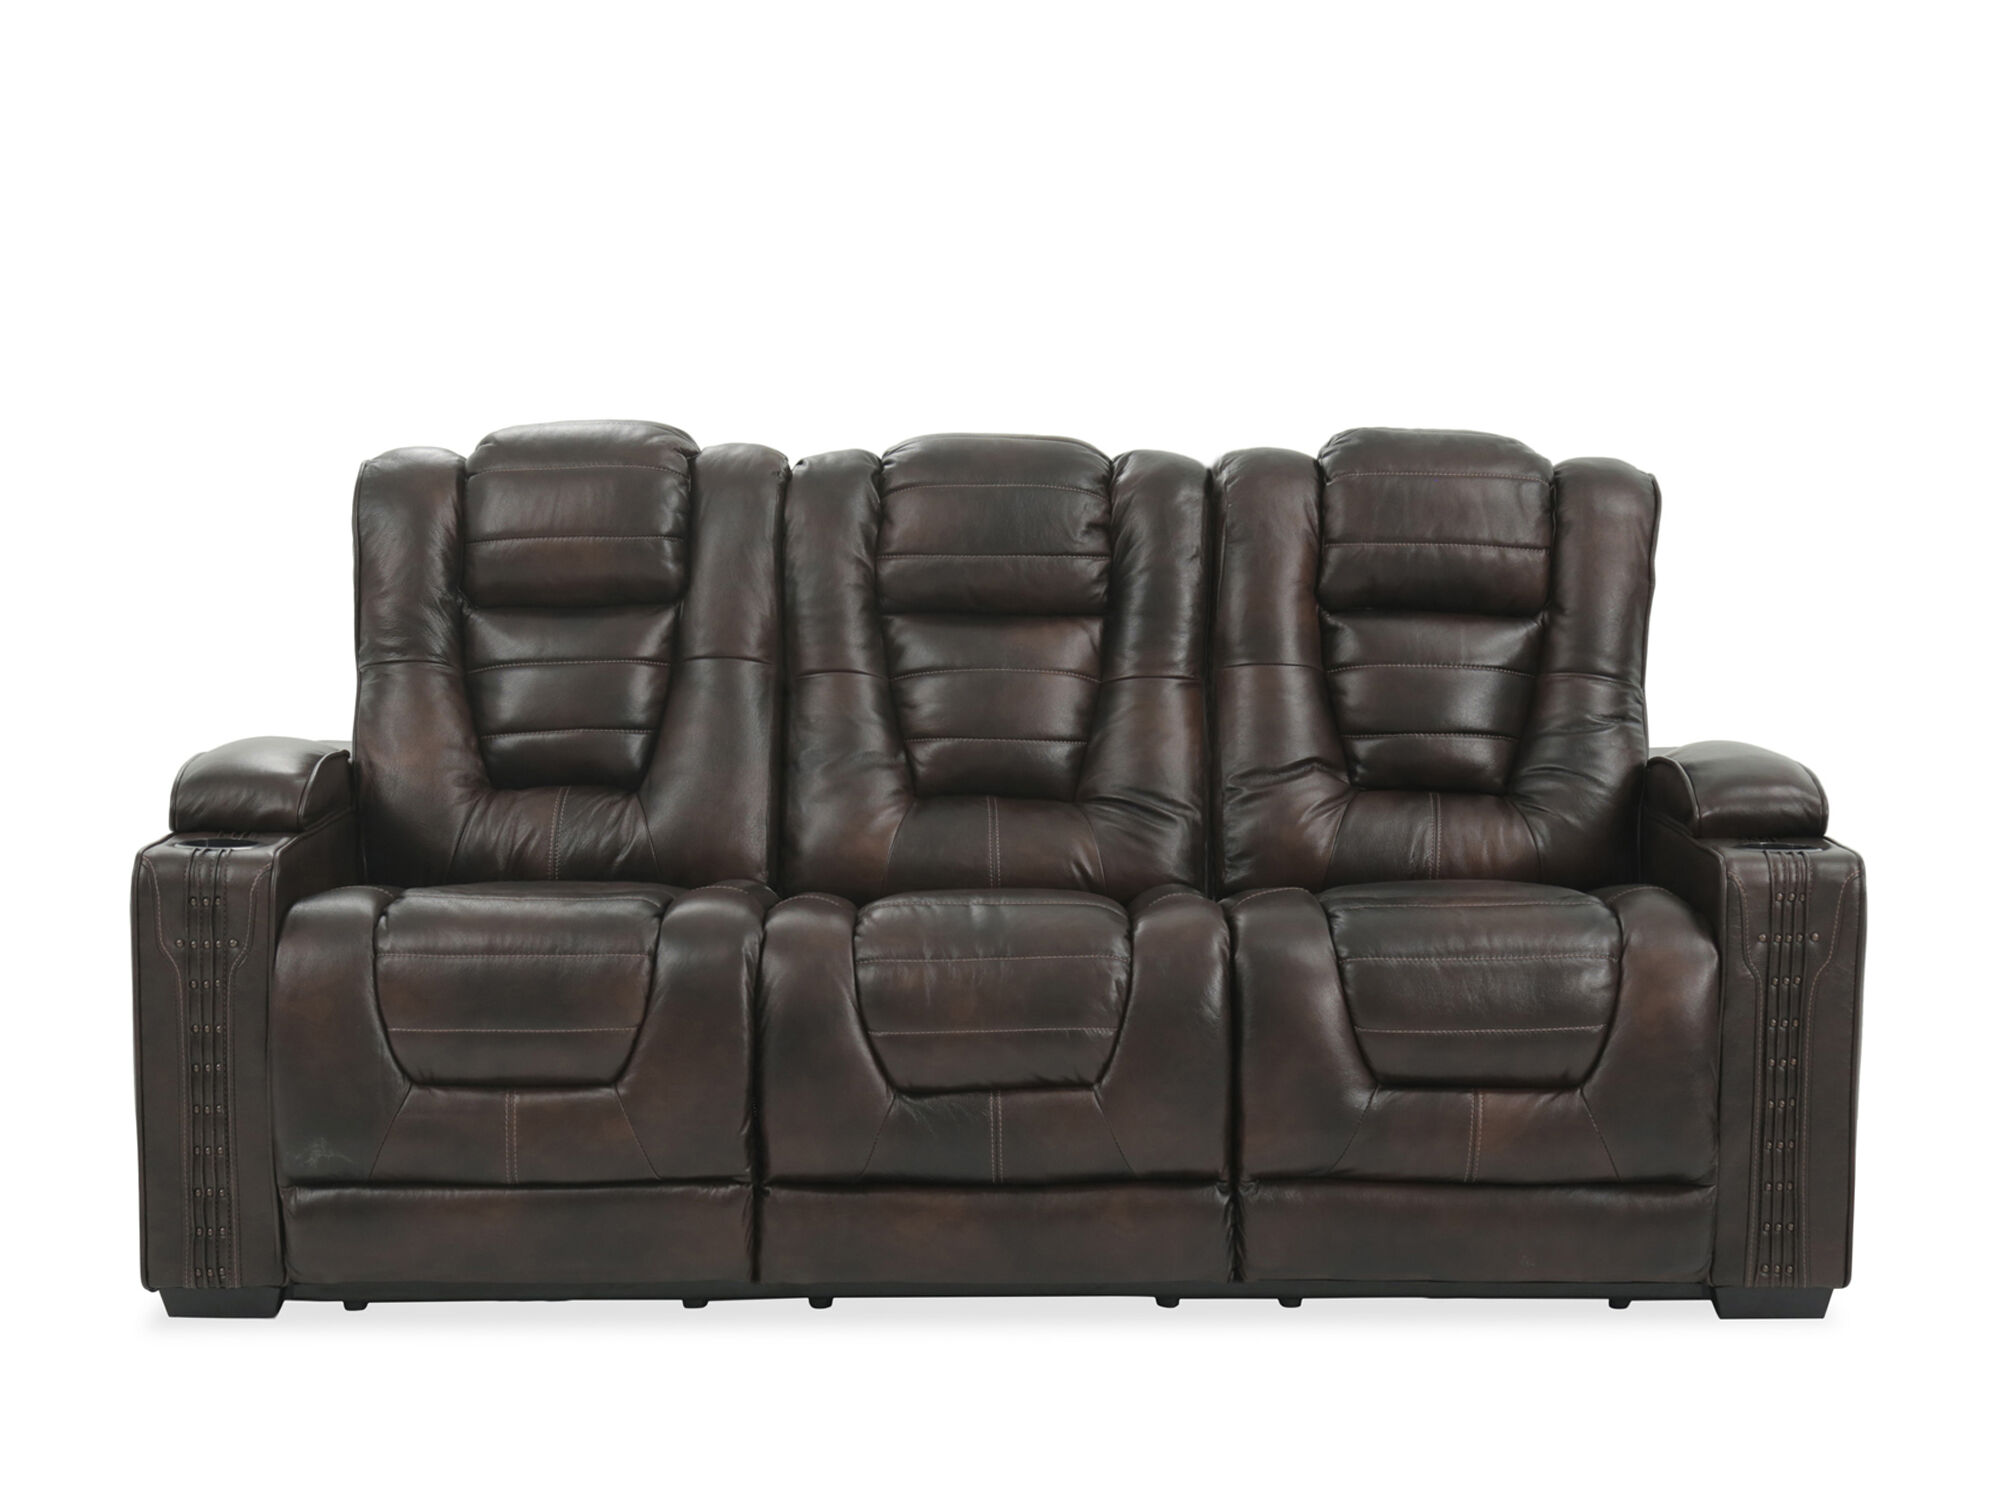 leather 84 power reclining sofa with cup holder in brown mathis rh mathisbrothers com reclining sofa with cup holders canada recliner sofa with cup holders uk